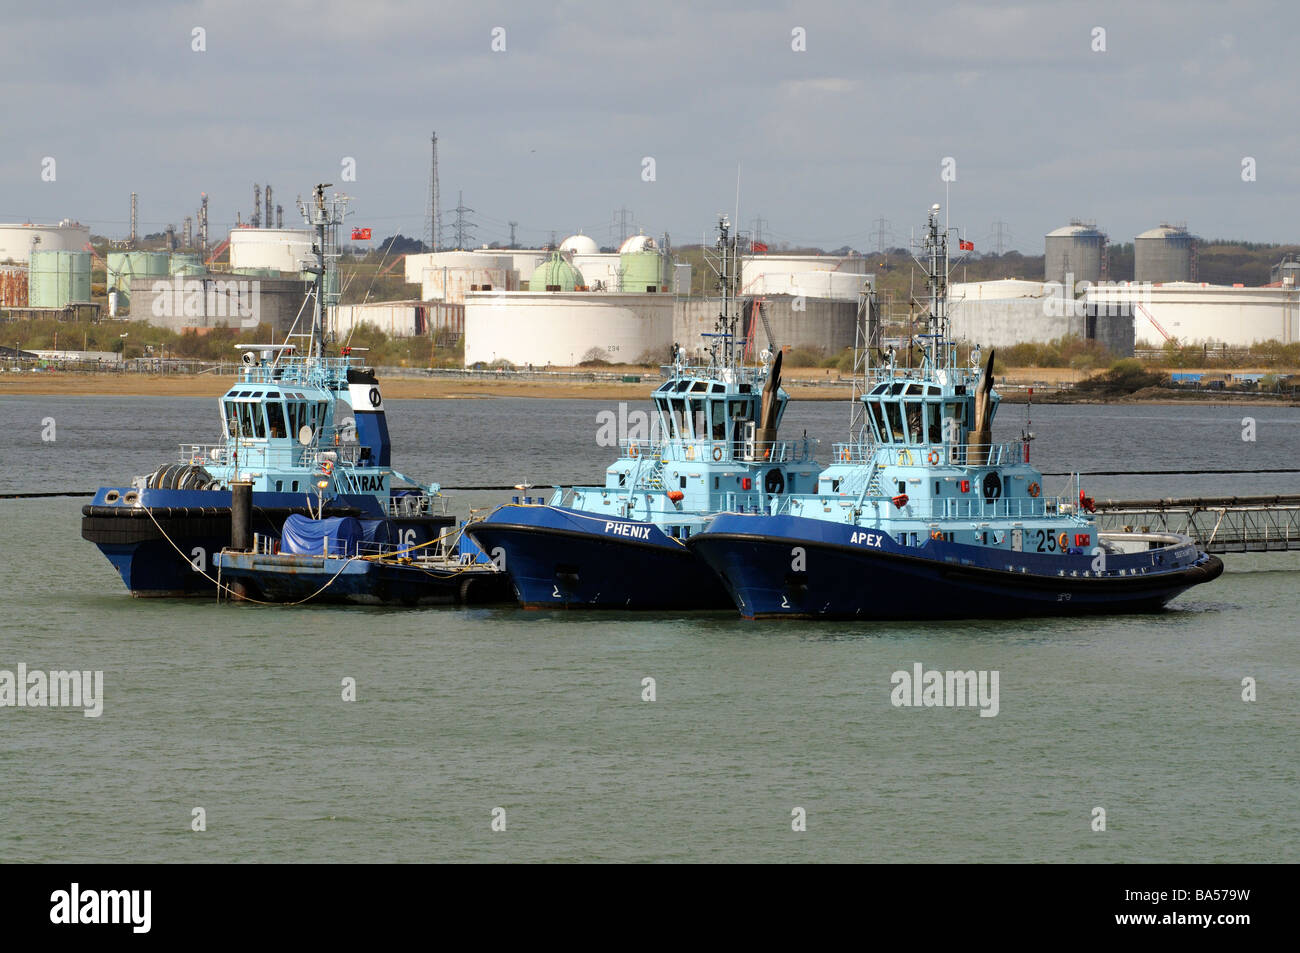 Three ocean going tugs on Southampton Water with a backdrop of the Fawley Refinery storage tanks - Stock Image